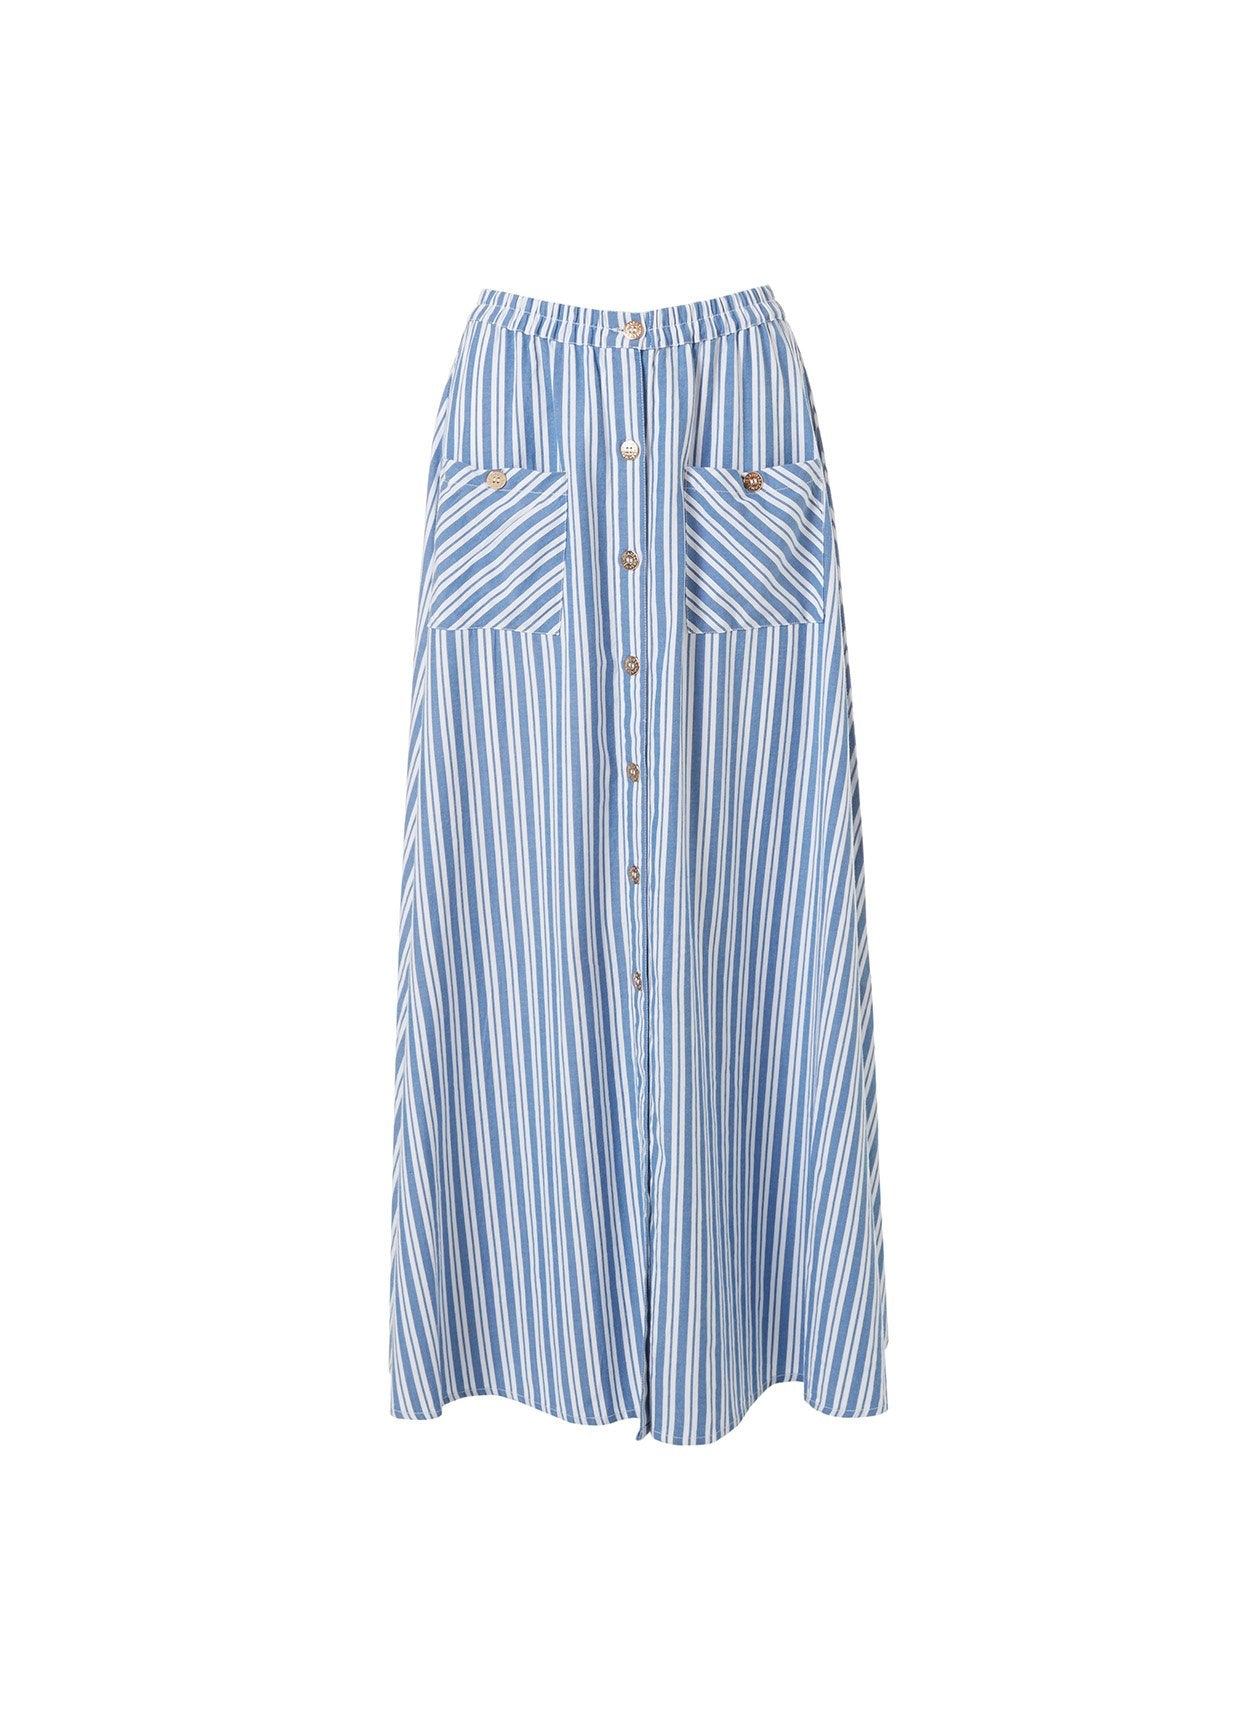 Kelly Blue Stripe Button Down Maxi Skirt 2020